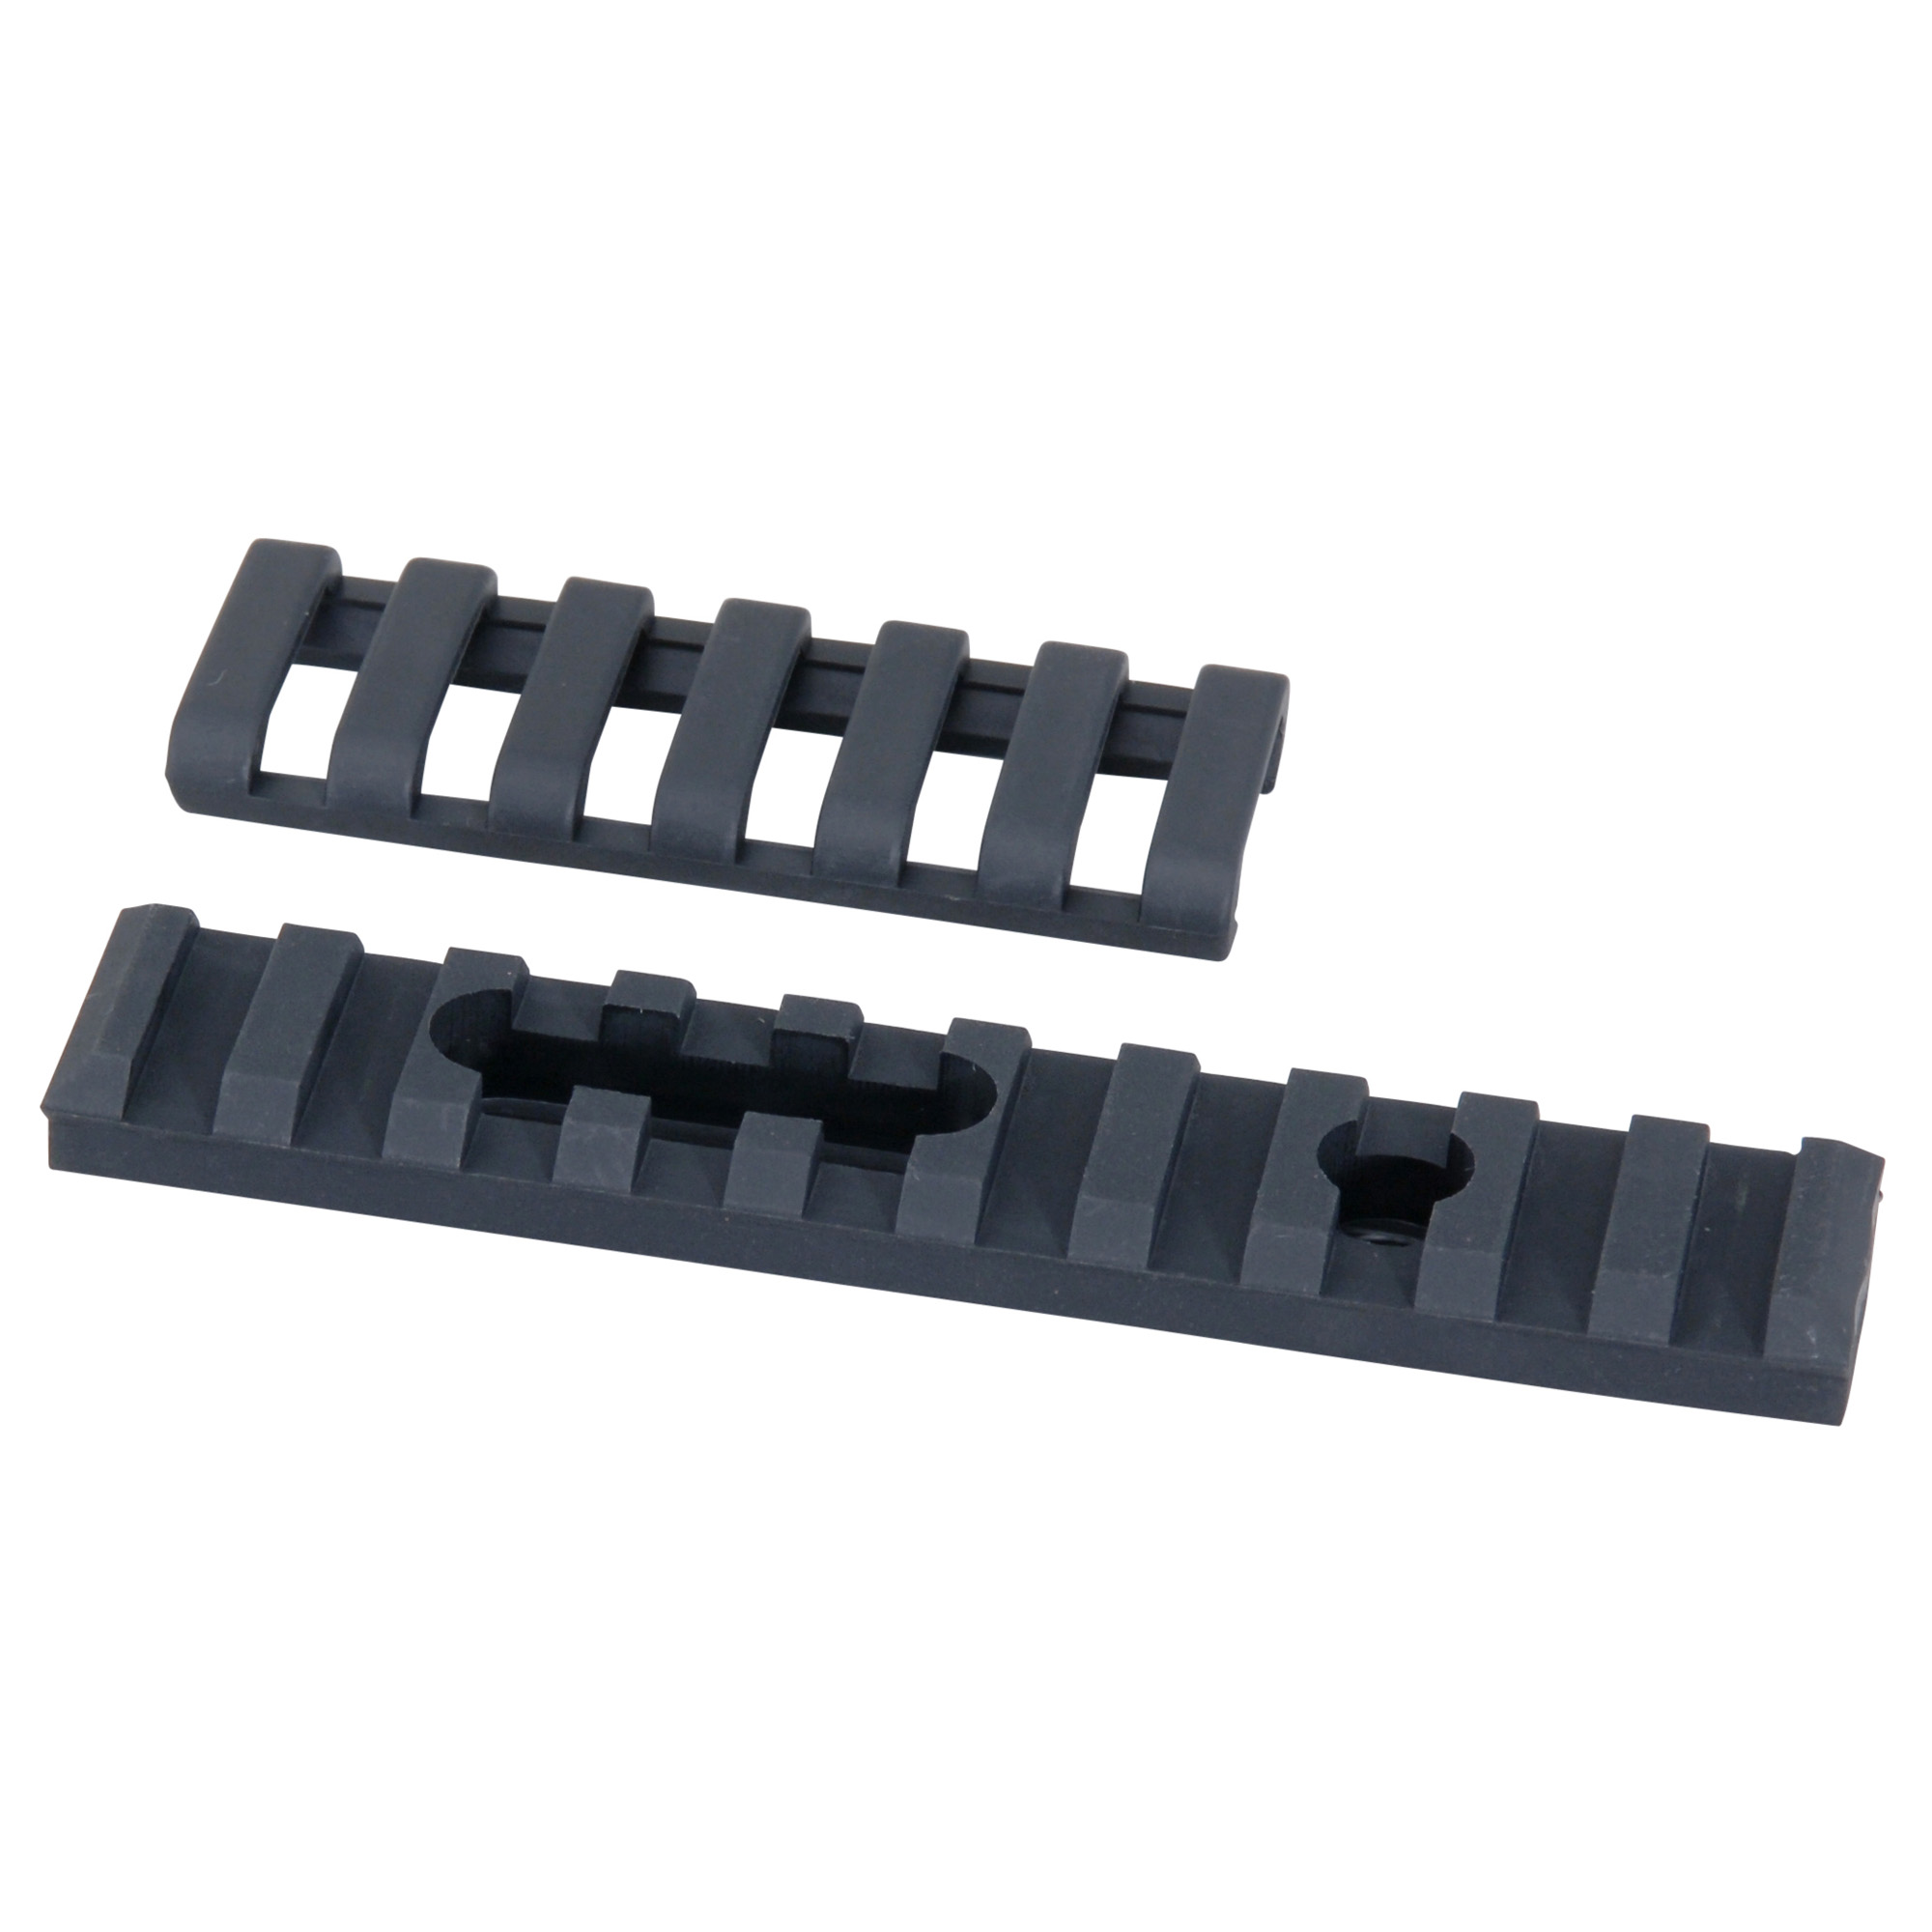 ERGO's 10-Slot Polymer Rail Mounting Platform is configured to Standard M1913 Picatinny Standards. Its glass filled nylon construction is lightweight and the mounting does not require alteration of AR handguard heat shields.